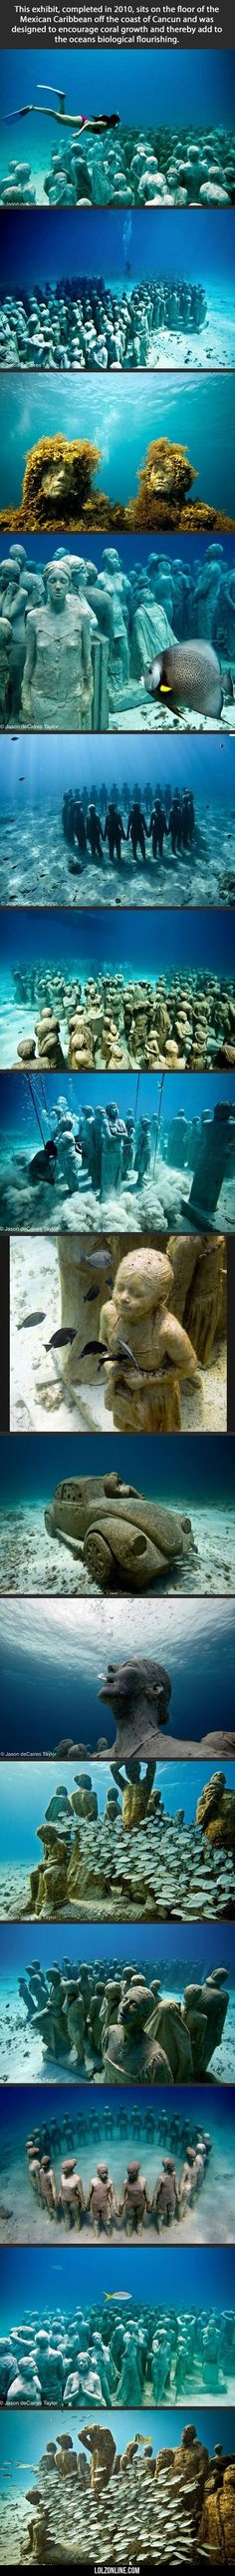 Awesome Underwater Museum #lol #haha #funny #scubadivingquotesunderwater